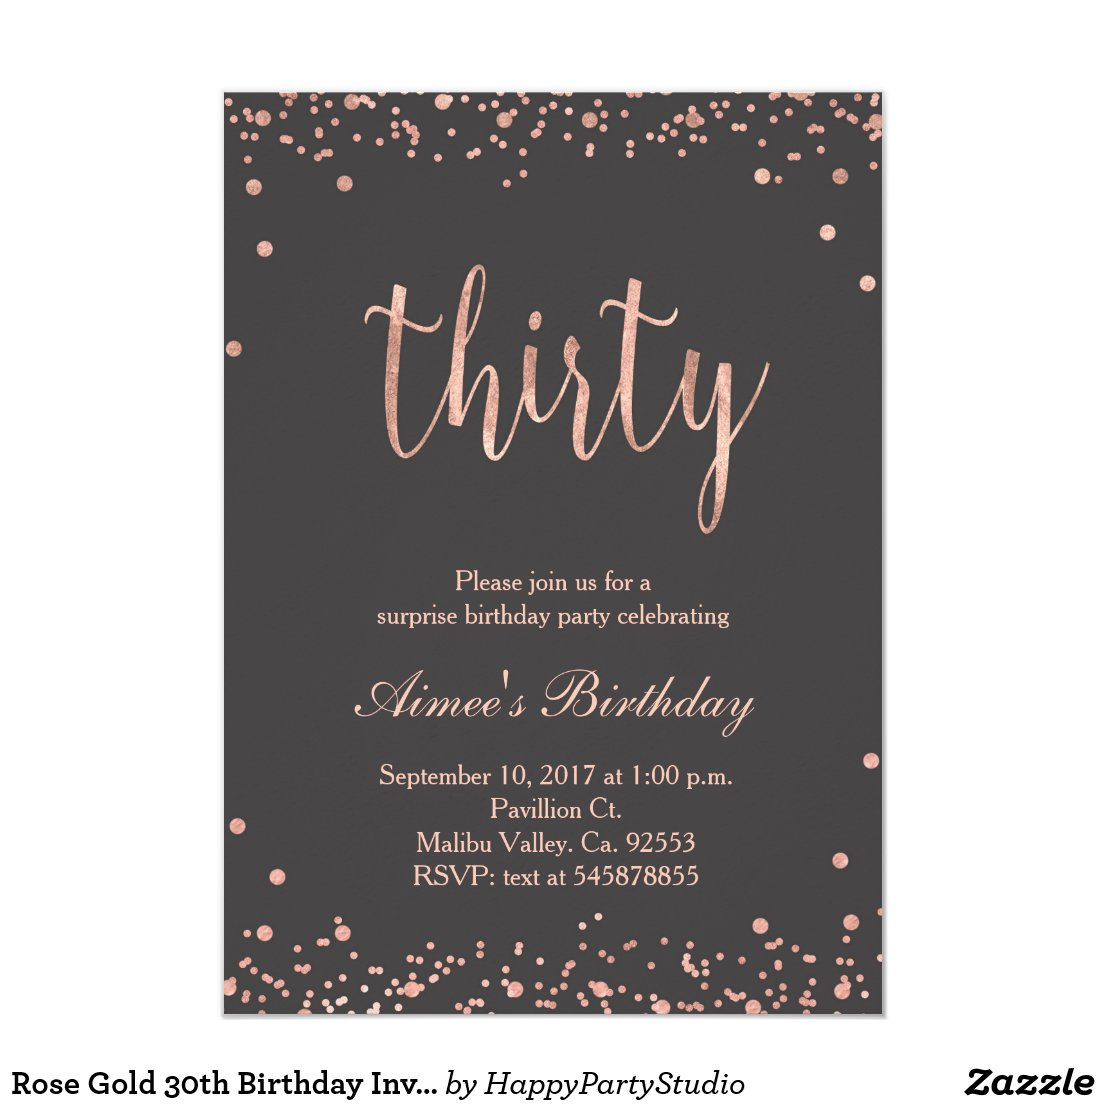 Rose Gold 30th Birthday Invitation